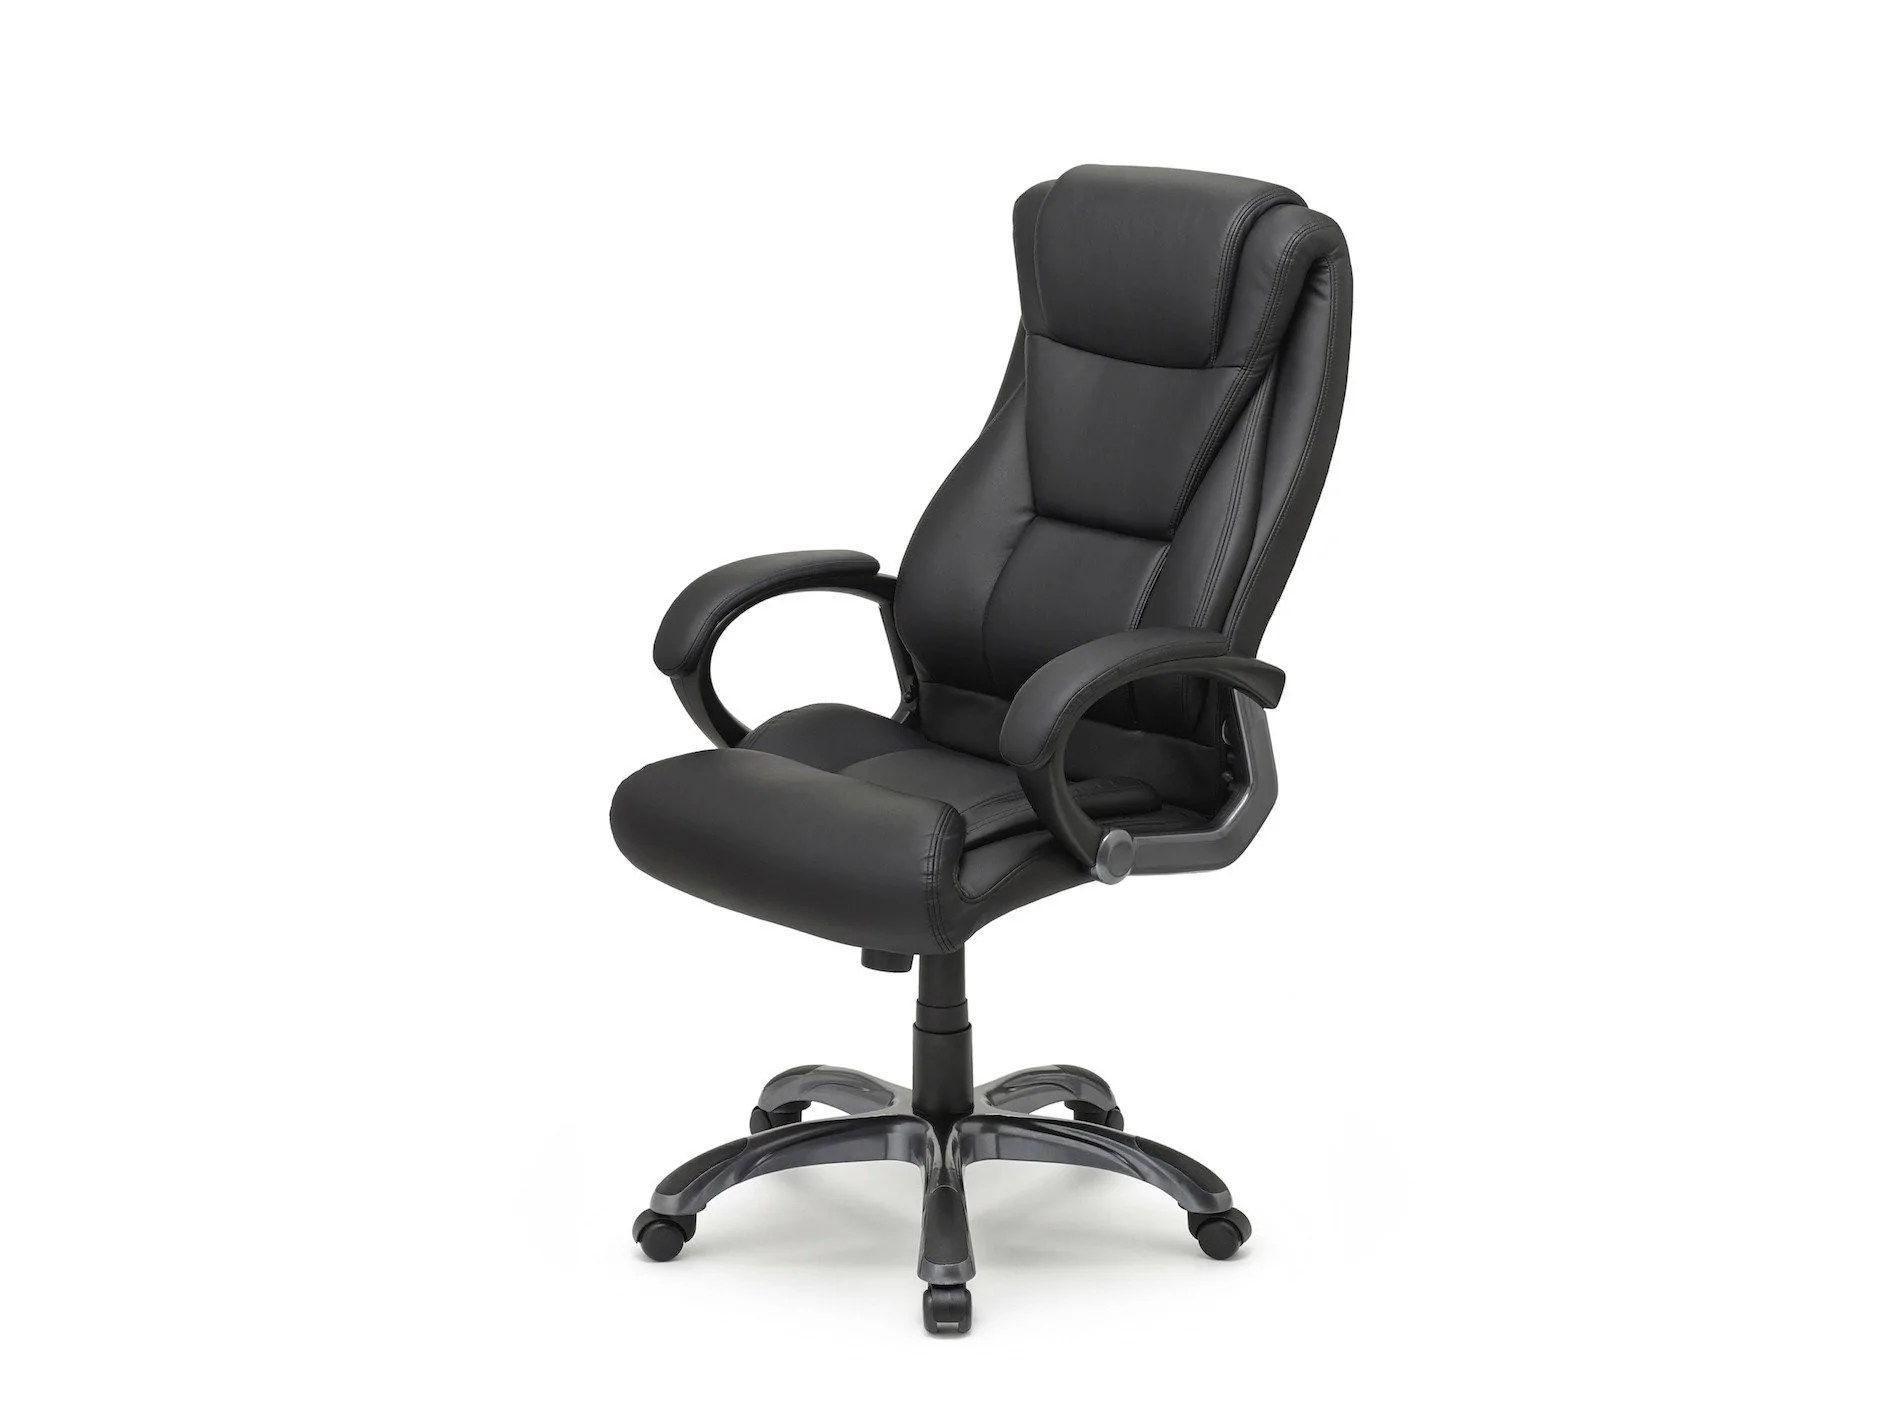 office chair leaning to one side best video game for adults executive lumbar support crossford